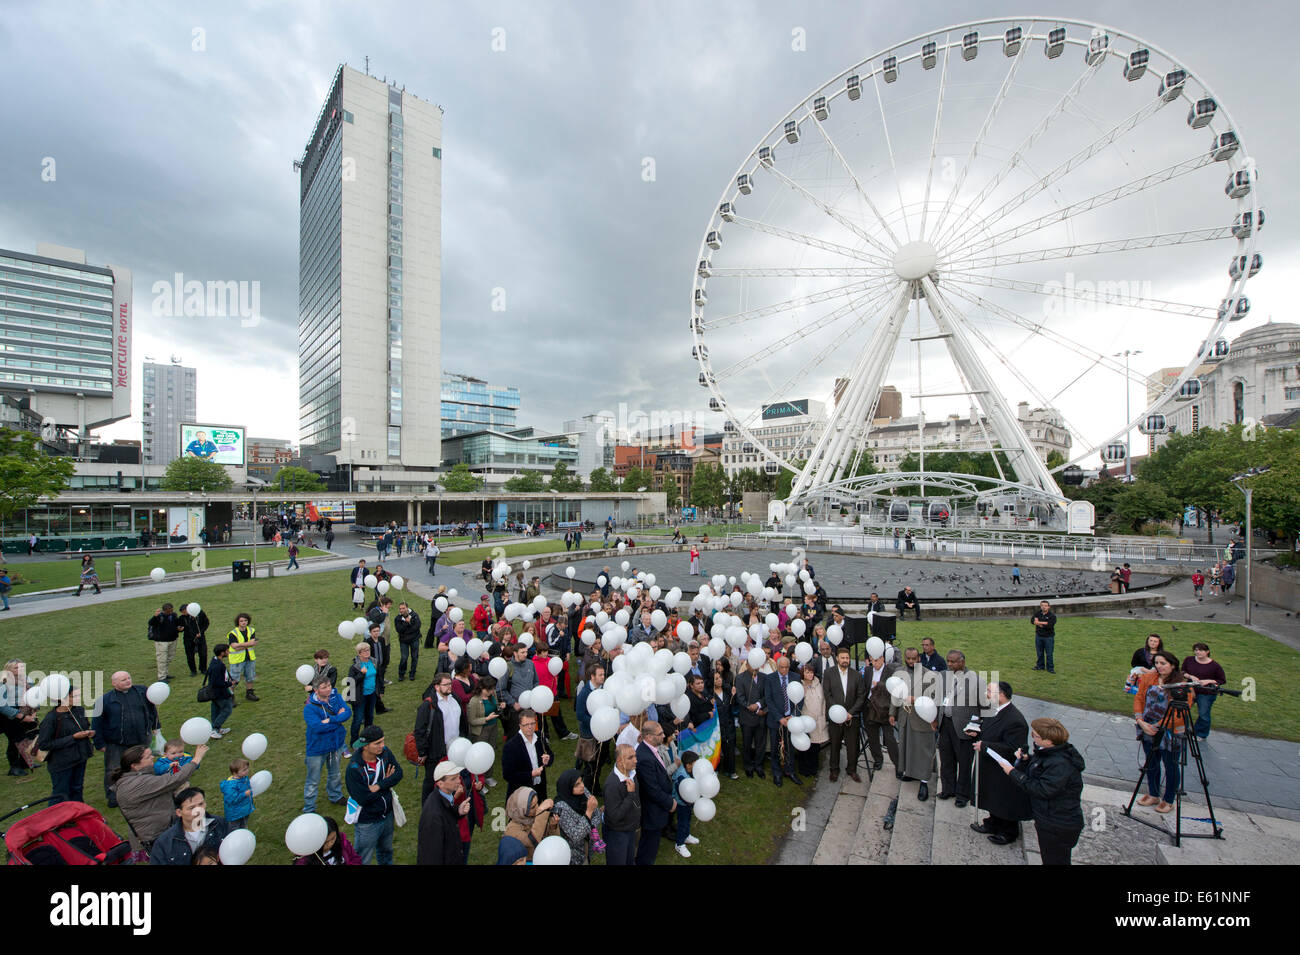 Manchester, UK. 11th August, 2014. A peace vigil is held in Piccadilly Gardens in Manchester in memory of those - Stock Image